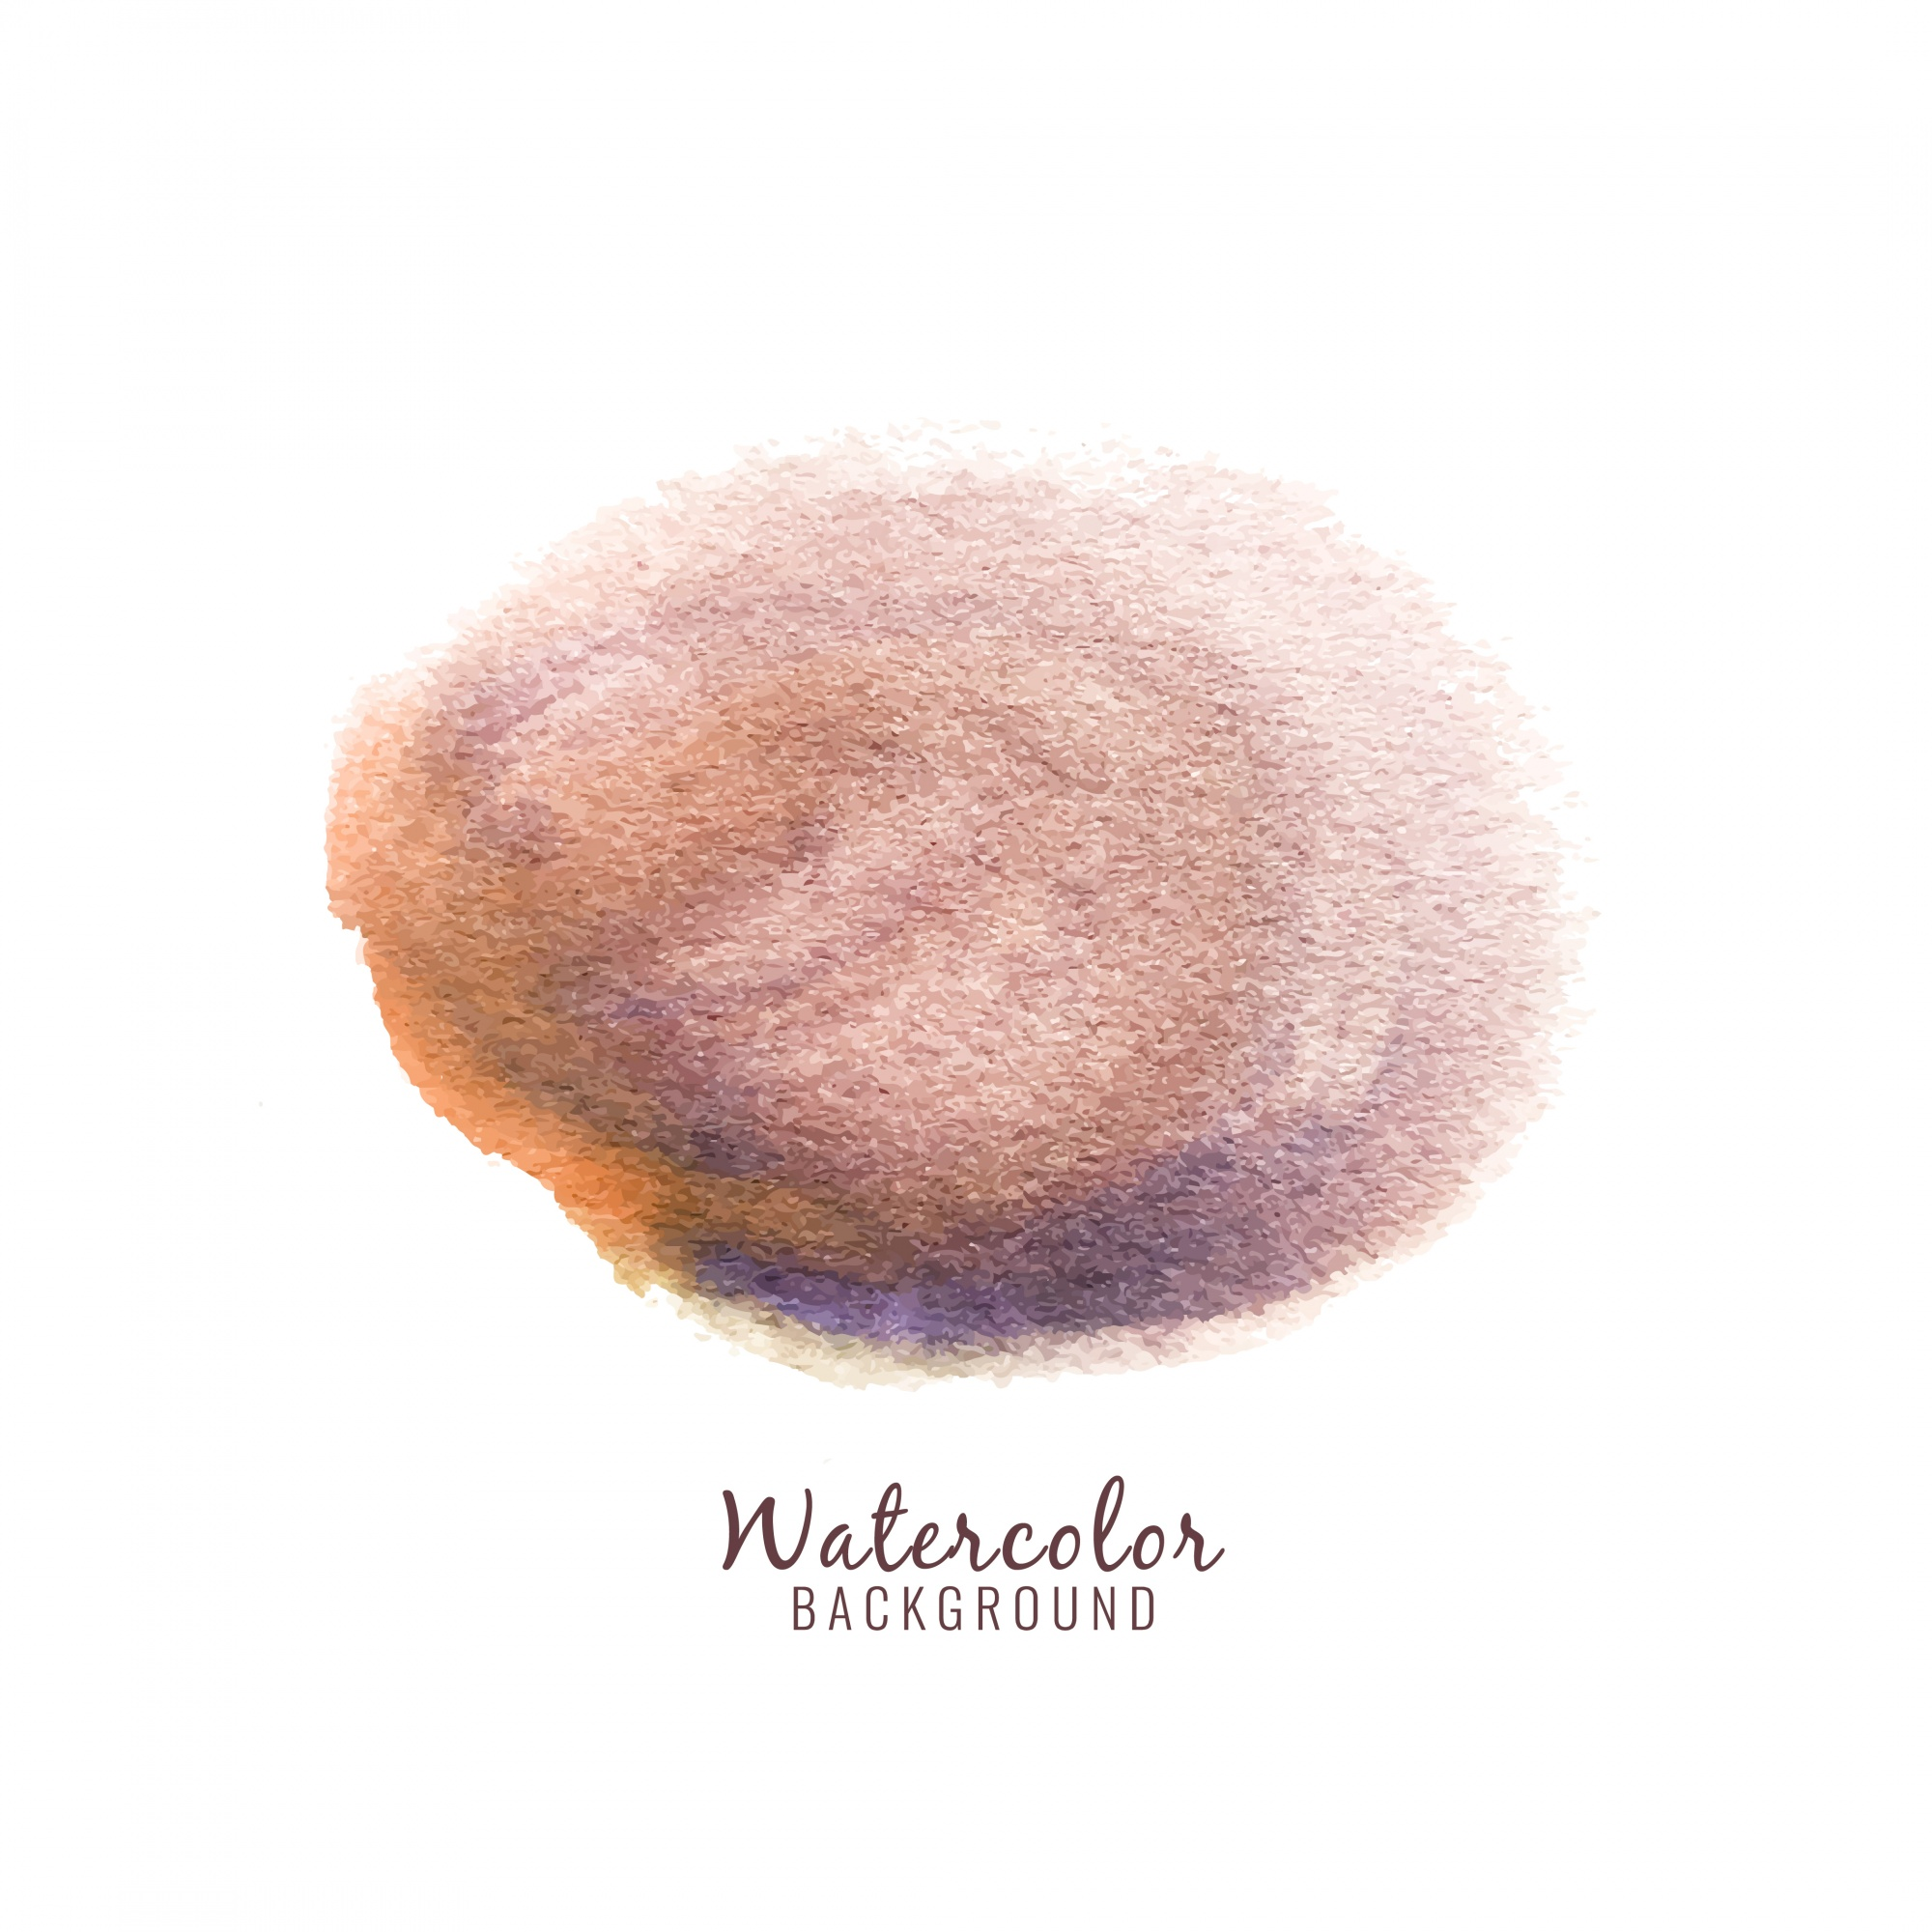 Abstract watercolor stain design background